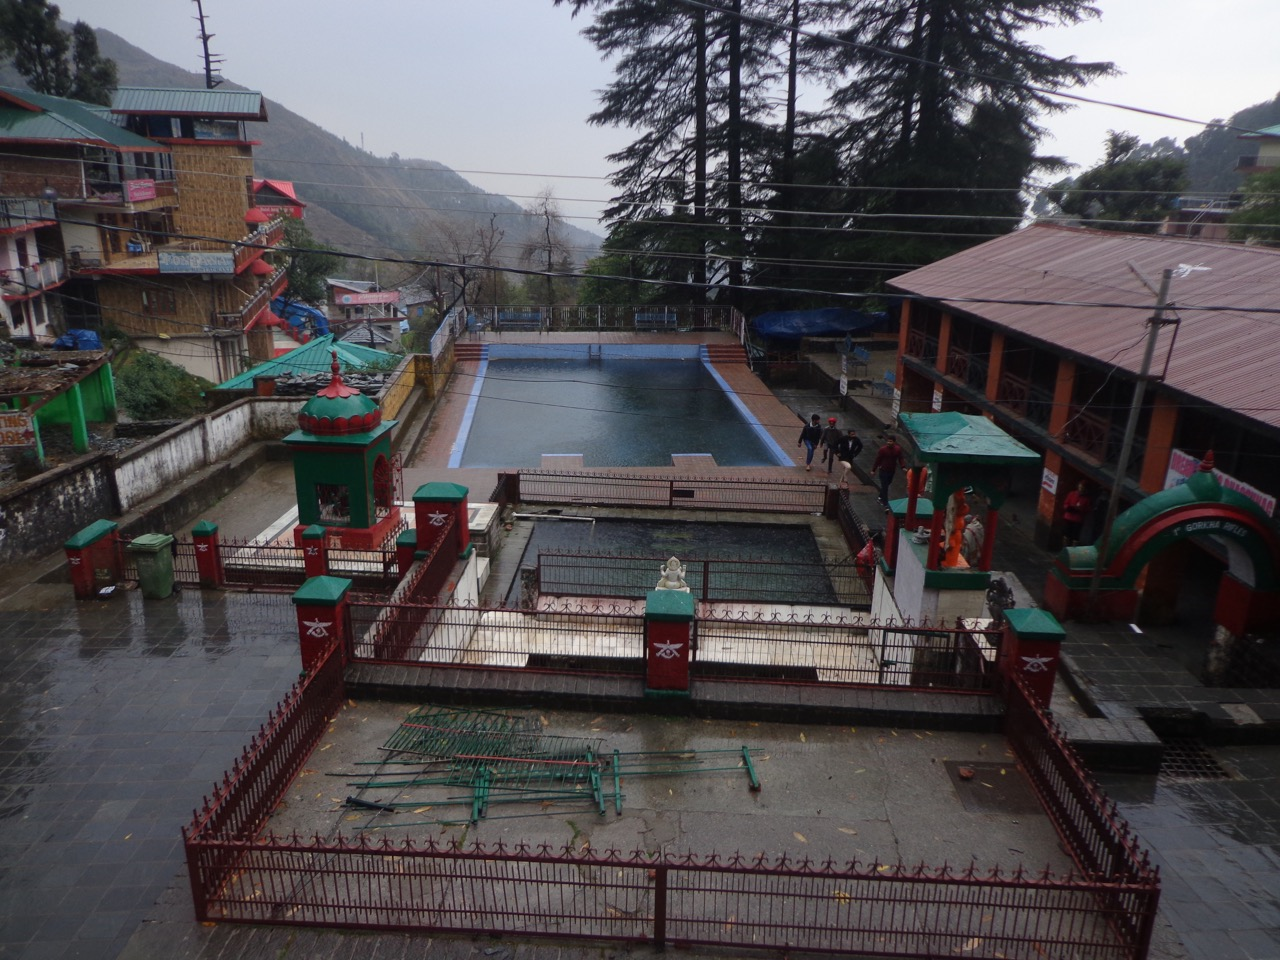 The courtyard of Bhaksunag temple has a swimming pool.